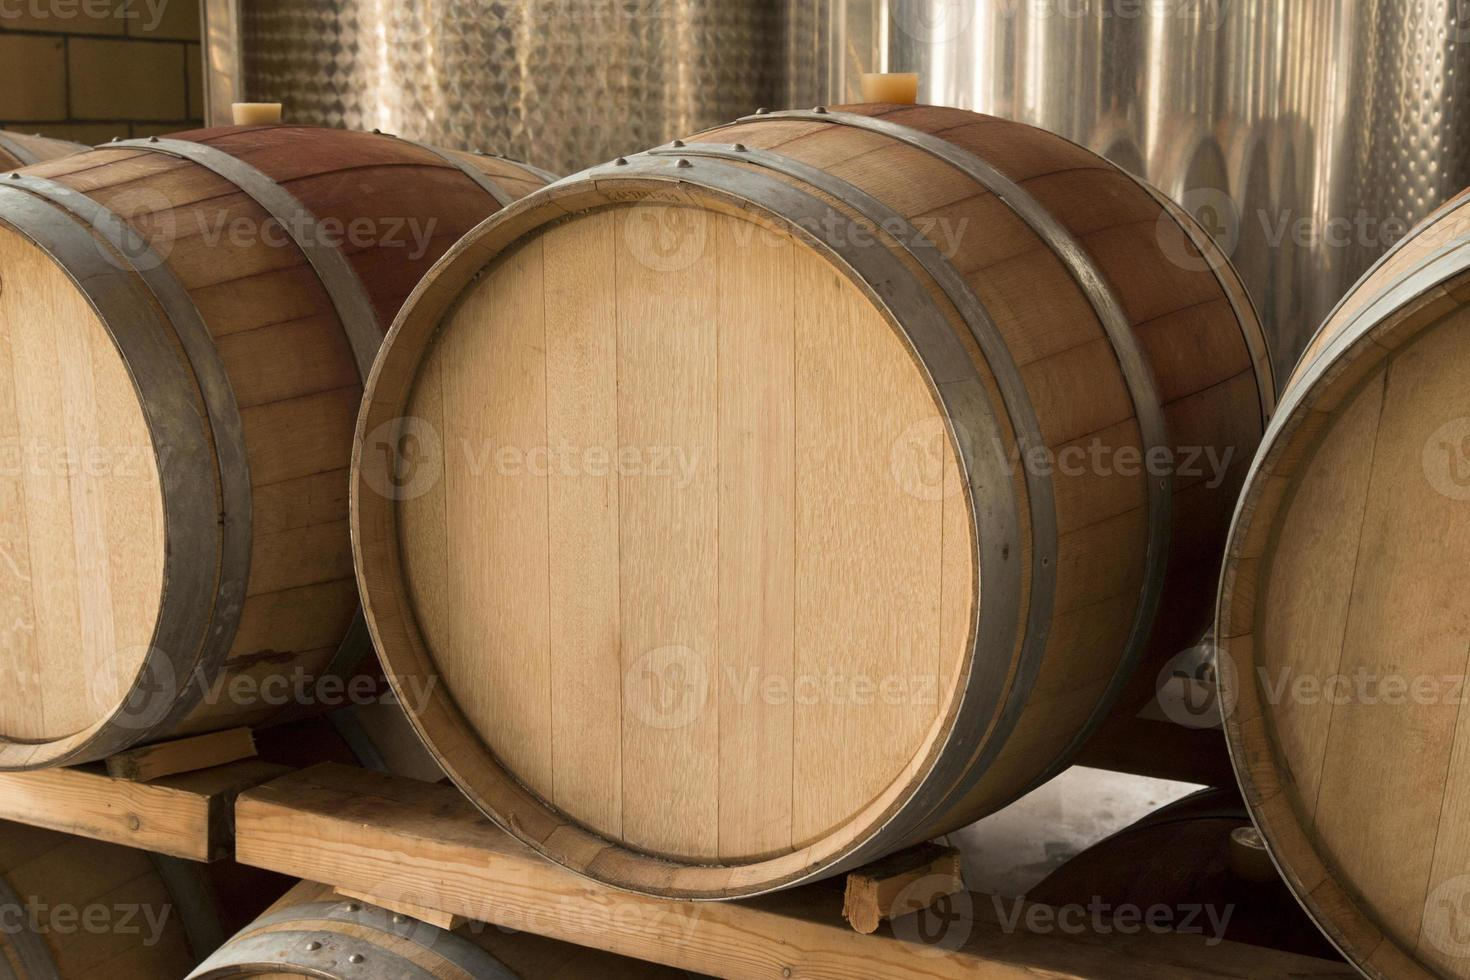 Wooden wine barrel photo